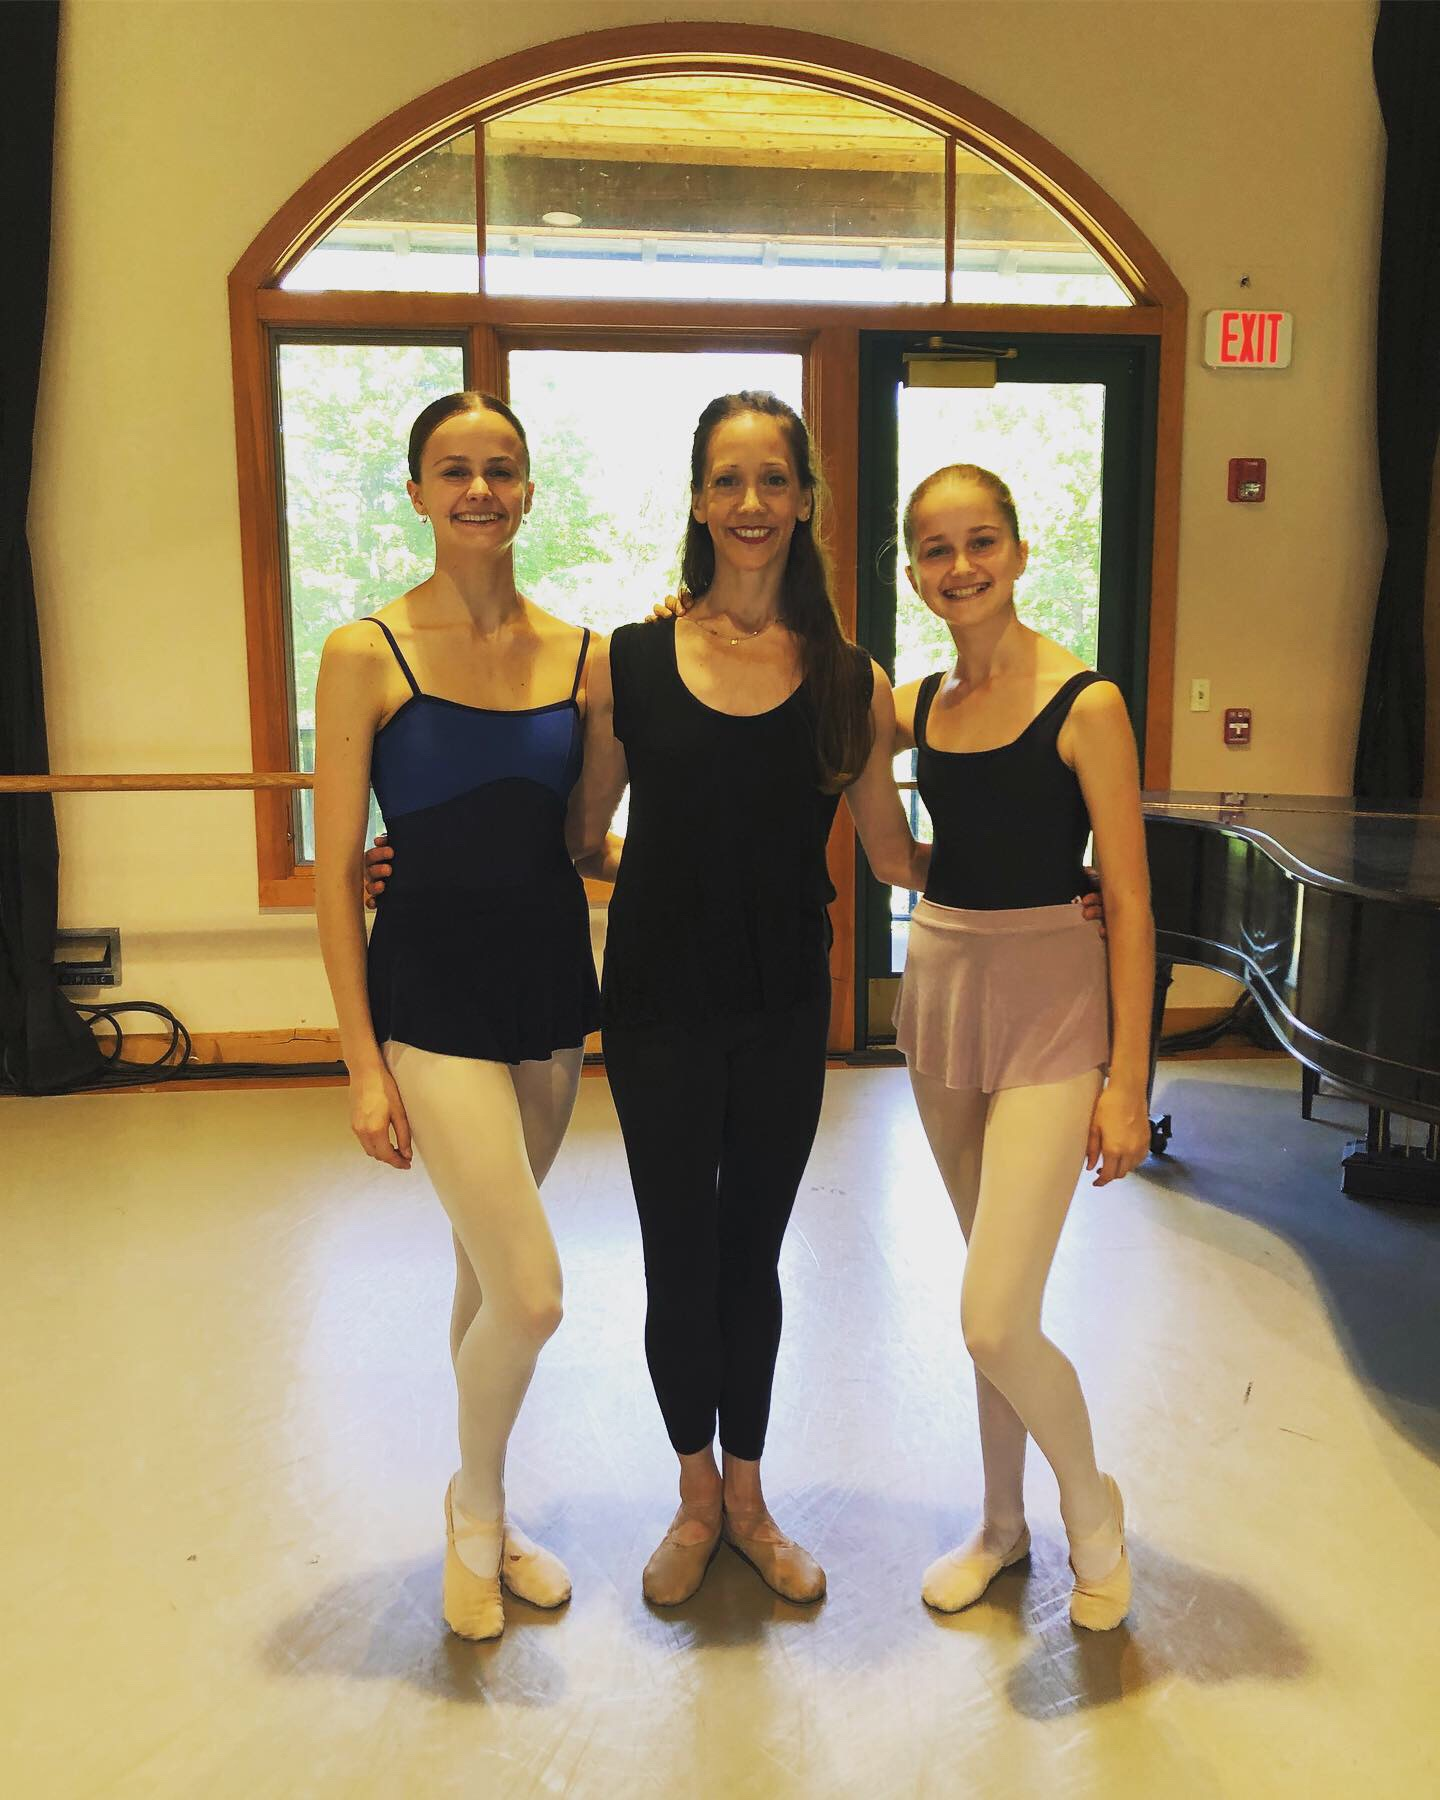 - Photo:Students from Extreme Ballet® Session ll received masterclasses from Maria Kowroski (Principal Dancer, New York City Ballet) and John Meehan (former Principal Dancer, American Ballet Theatre).